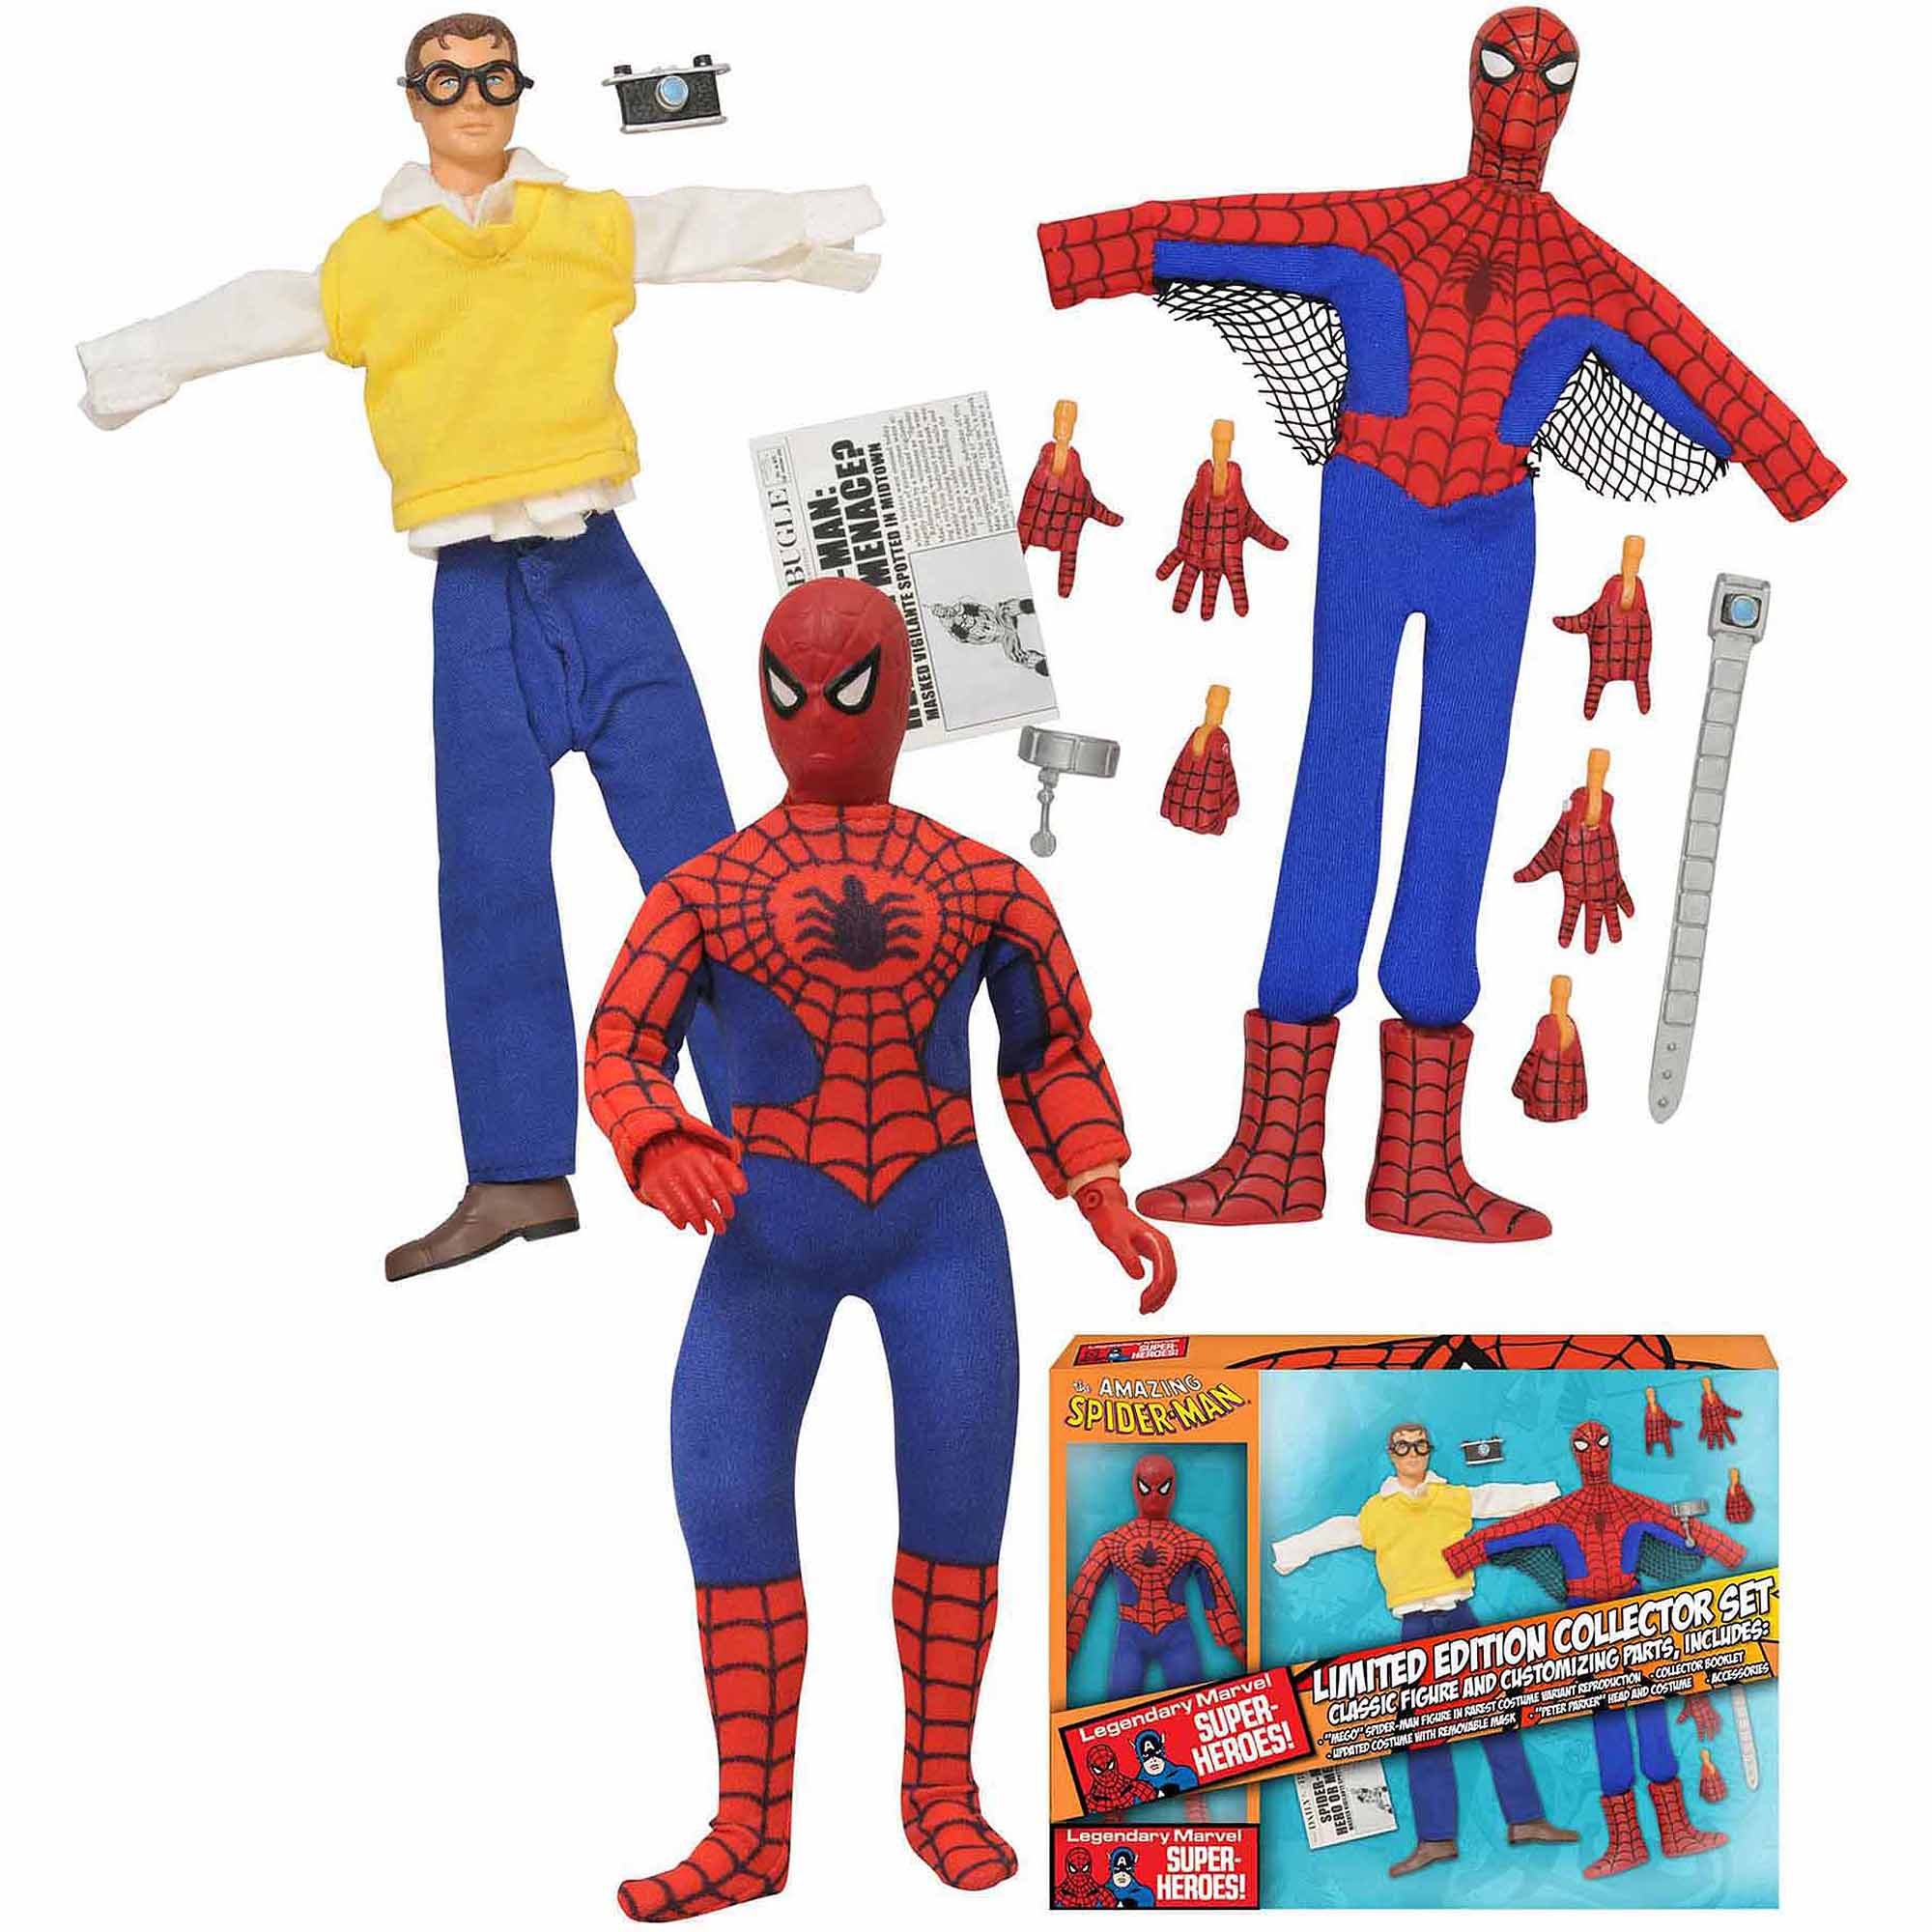 "Diamond Select Toys Marvel Limited Edition Spider-Man 8"" Retro Action Figure Set"